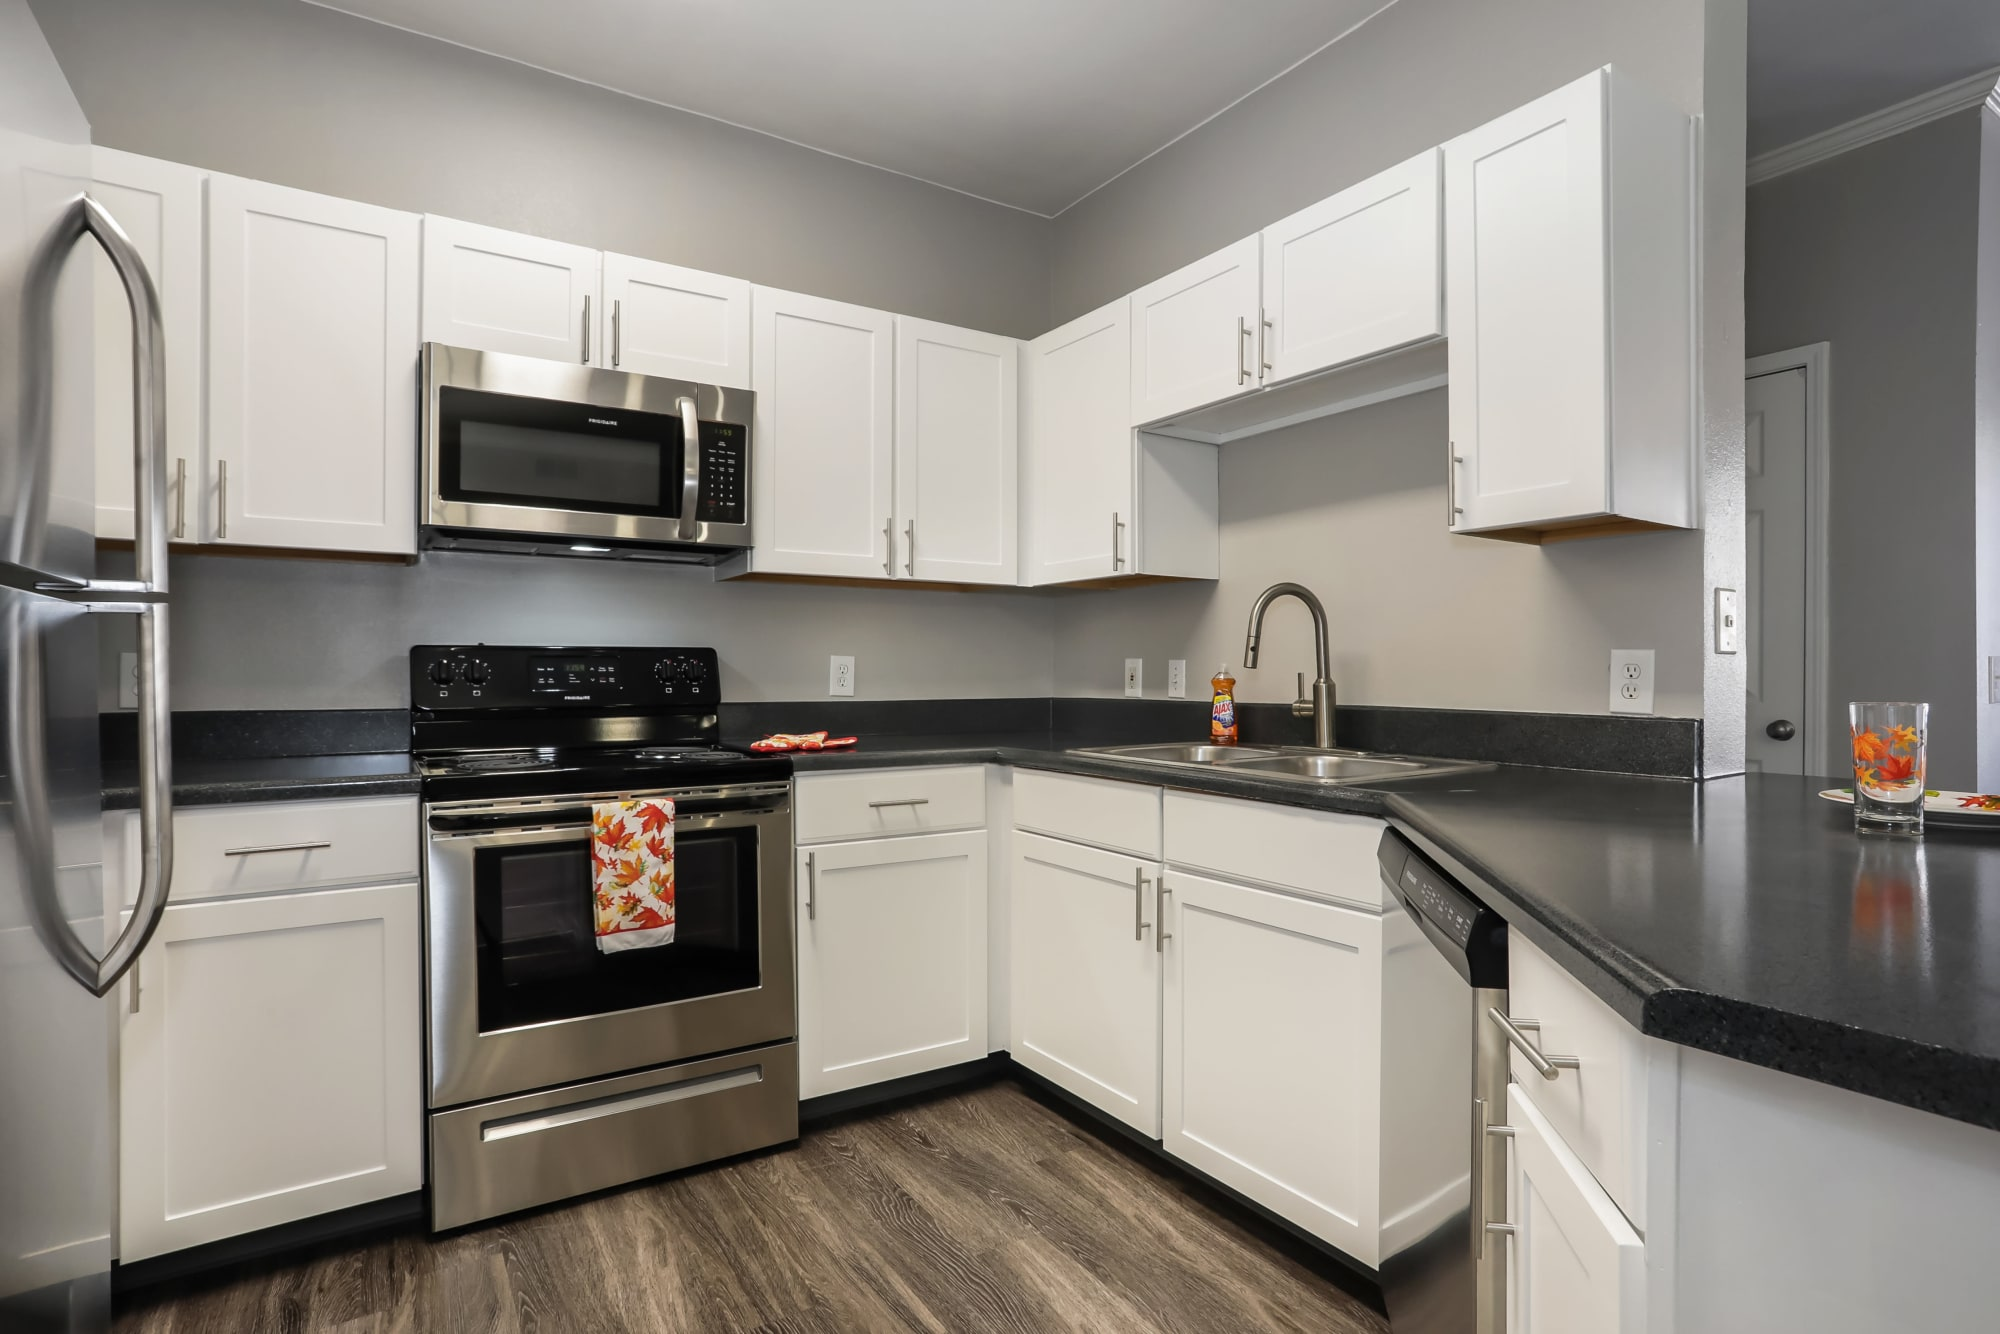 White Renovation Kitchen  with stainless steel appliances Hawthorne Hill Apartments